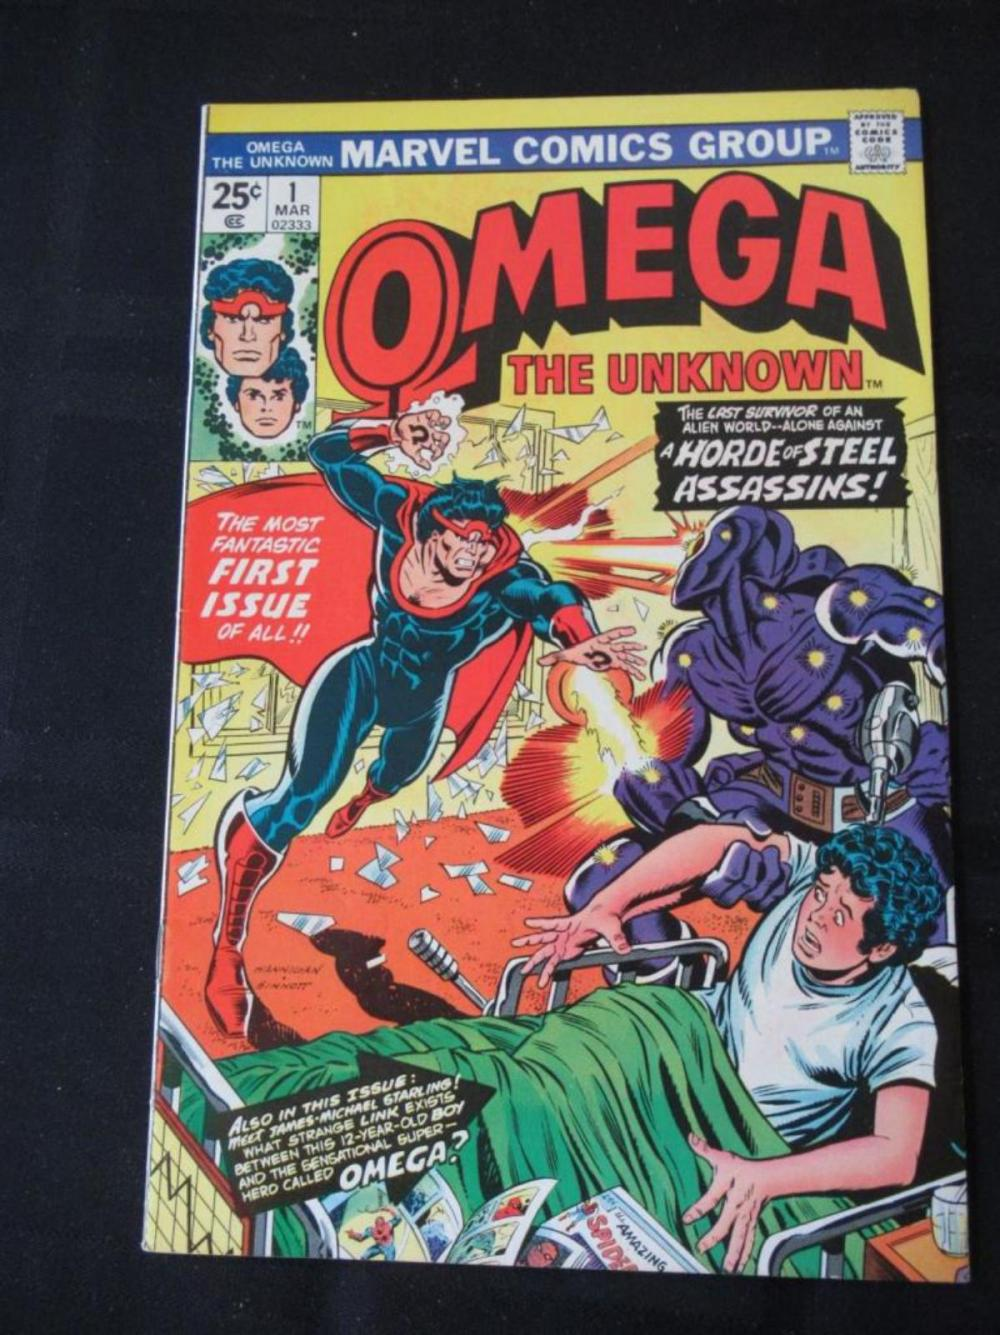 Omega The Unknown 25c #1 Fantastic First Issue